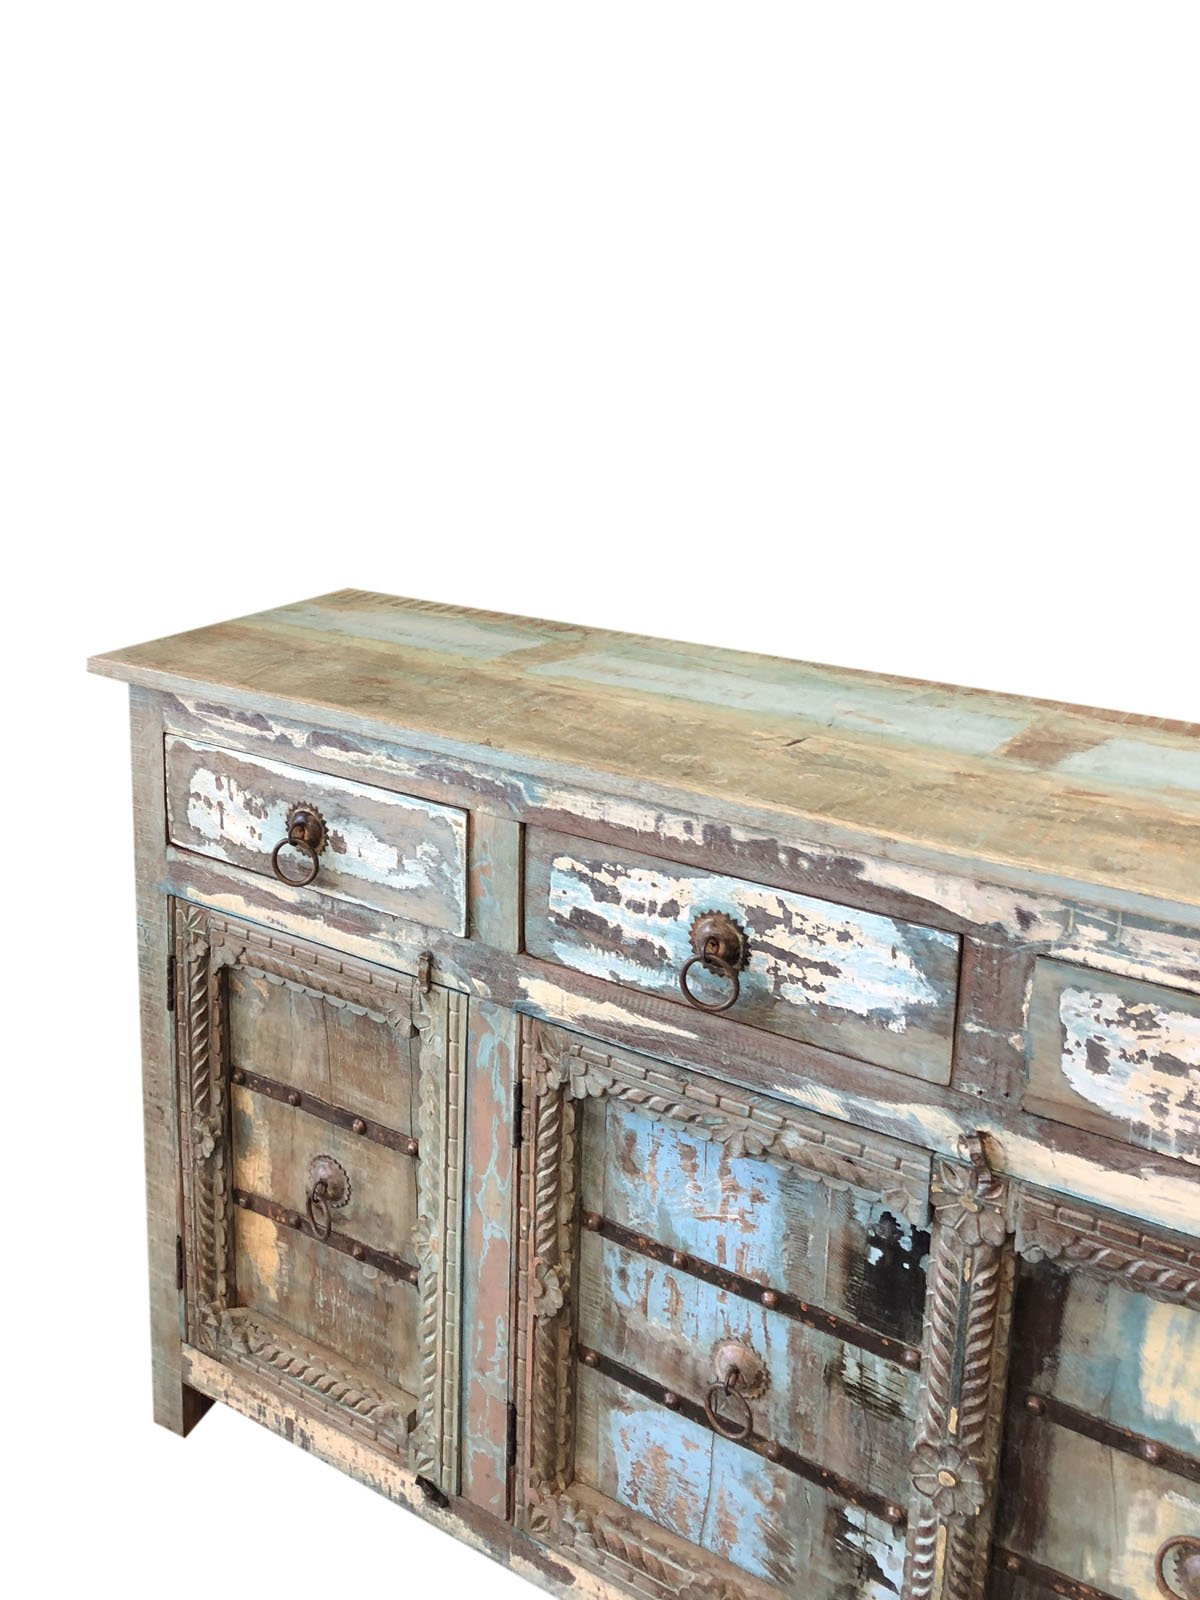 Mogul Interior Antique Sideboard Solid Wood Console Rustic Distressed Blue Chest Buffet Cabinet Furniture Farmhouse Chic by Mogul Interior (Image #2)